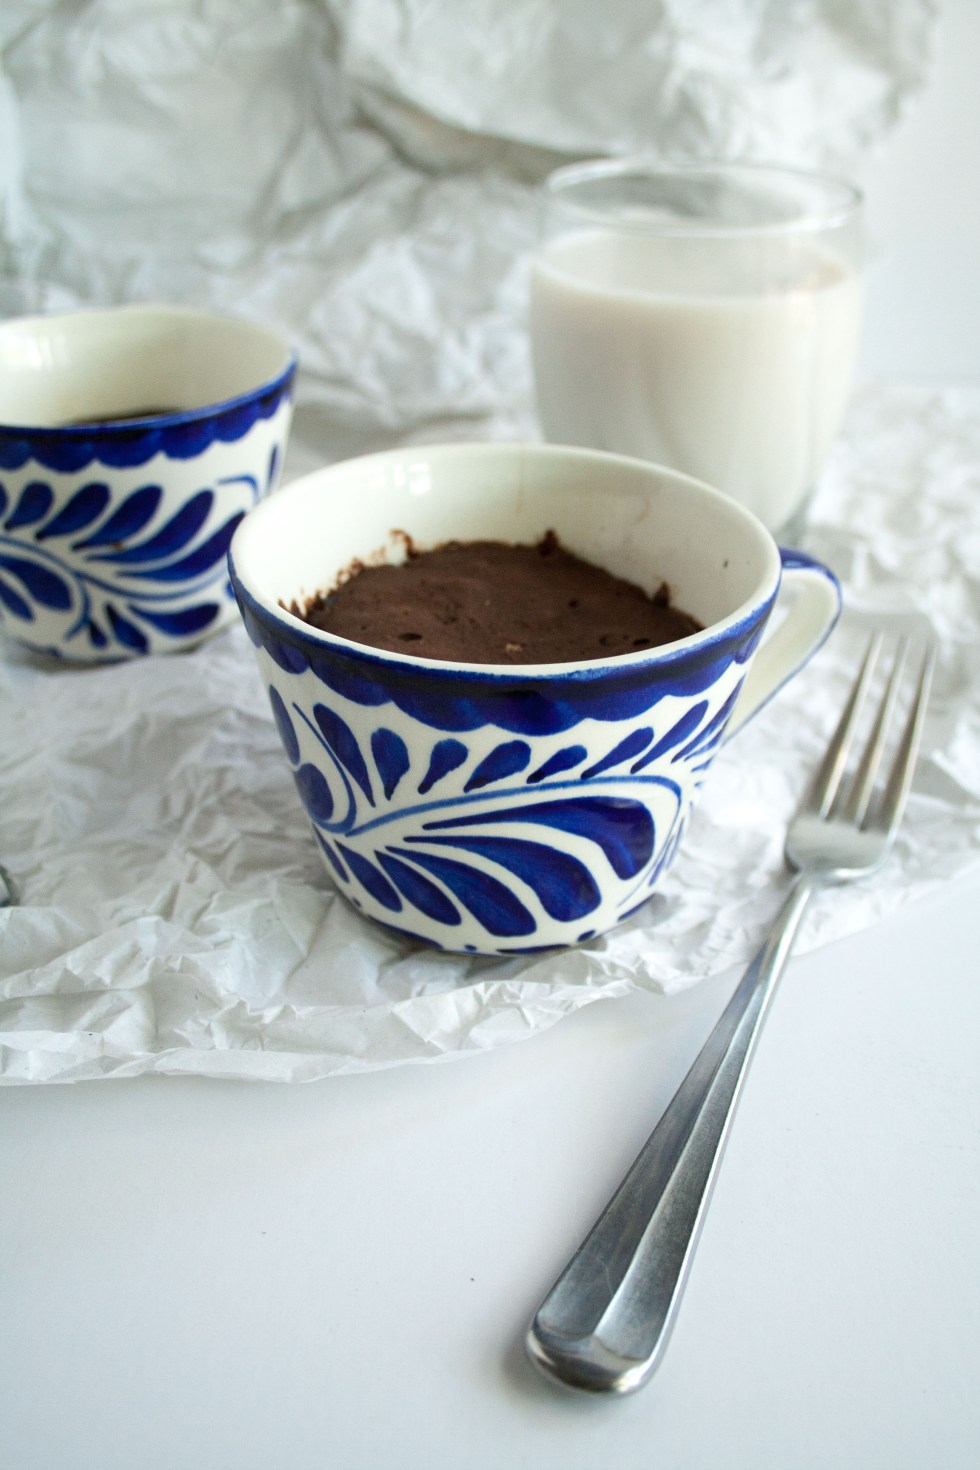 Chocolate Coffee Mug Cake (vegan, gluten free) - This easy one serving dessert takes minutes to make. Perfect for when you want a quick treat!